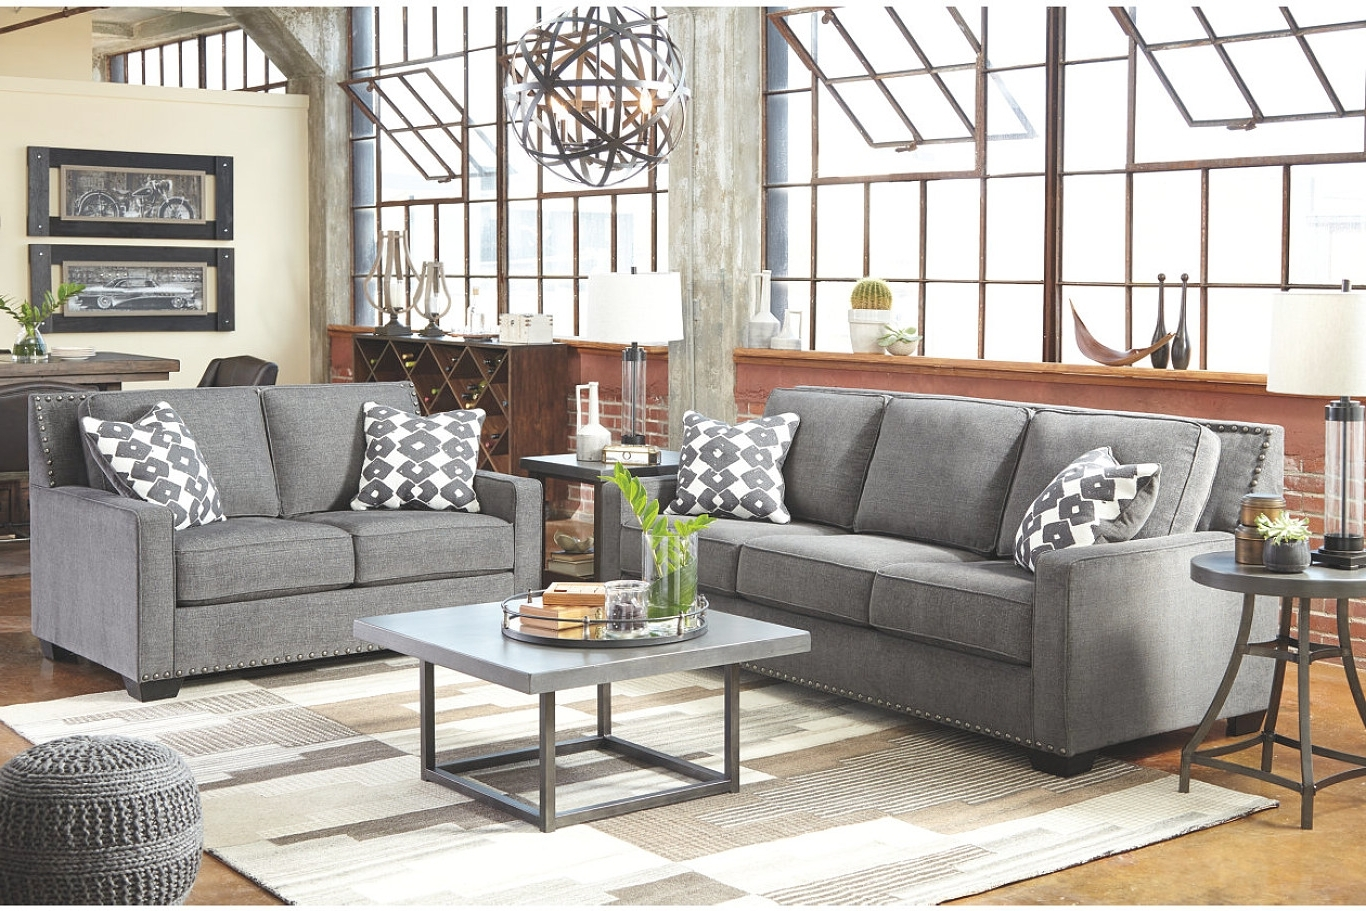 Famous Discount Sofas Ashley Furniture Living Room Sets Sectionals Rent A Regarding Nebraska Furniture Mart Sectional Sofas (View 8 of 20)